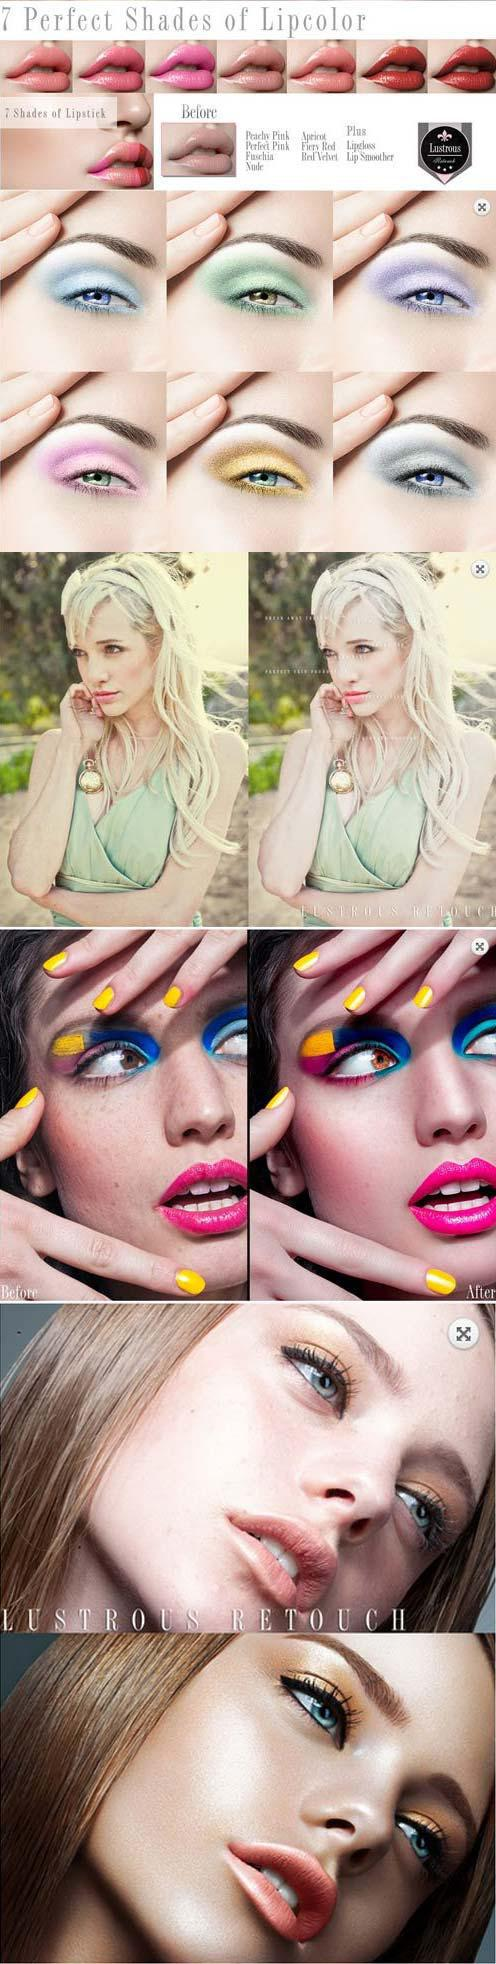 Lustrous Retouch Photoshop Actions